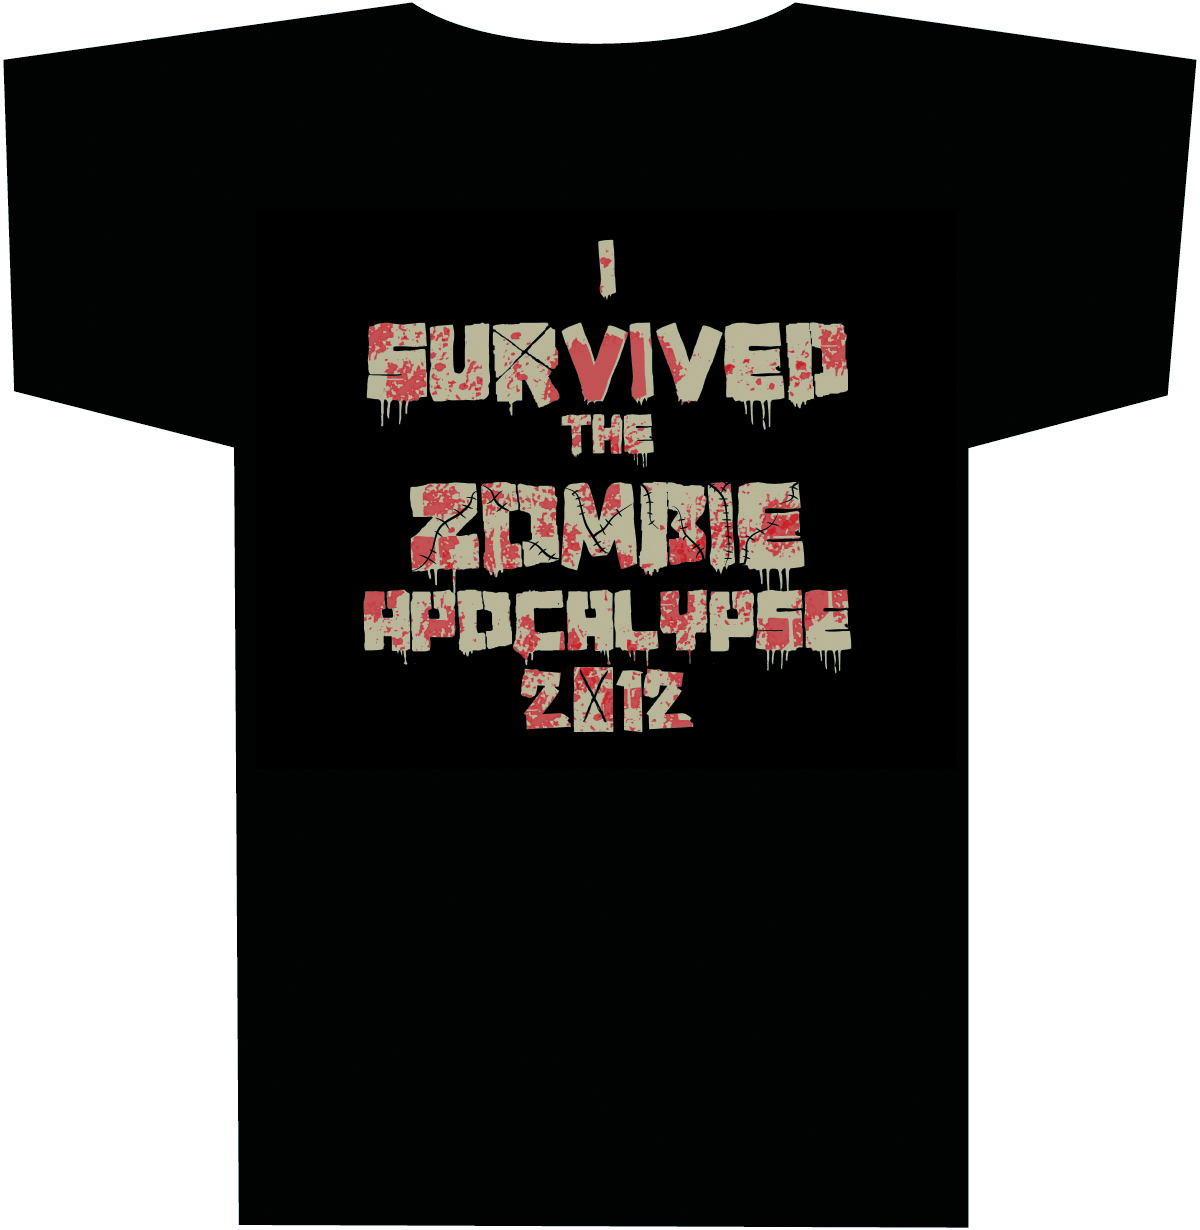 I SURVIVED THE 2012 ZOMBIE APOCALYPSE T/S XL